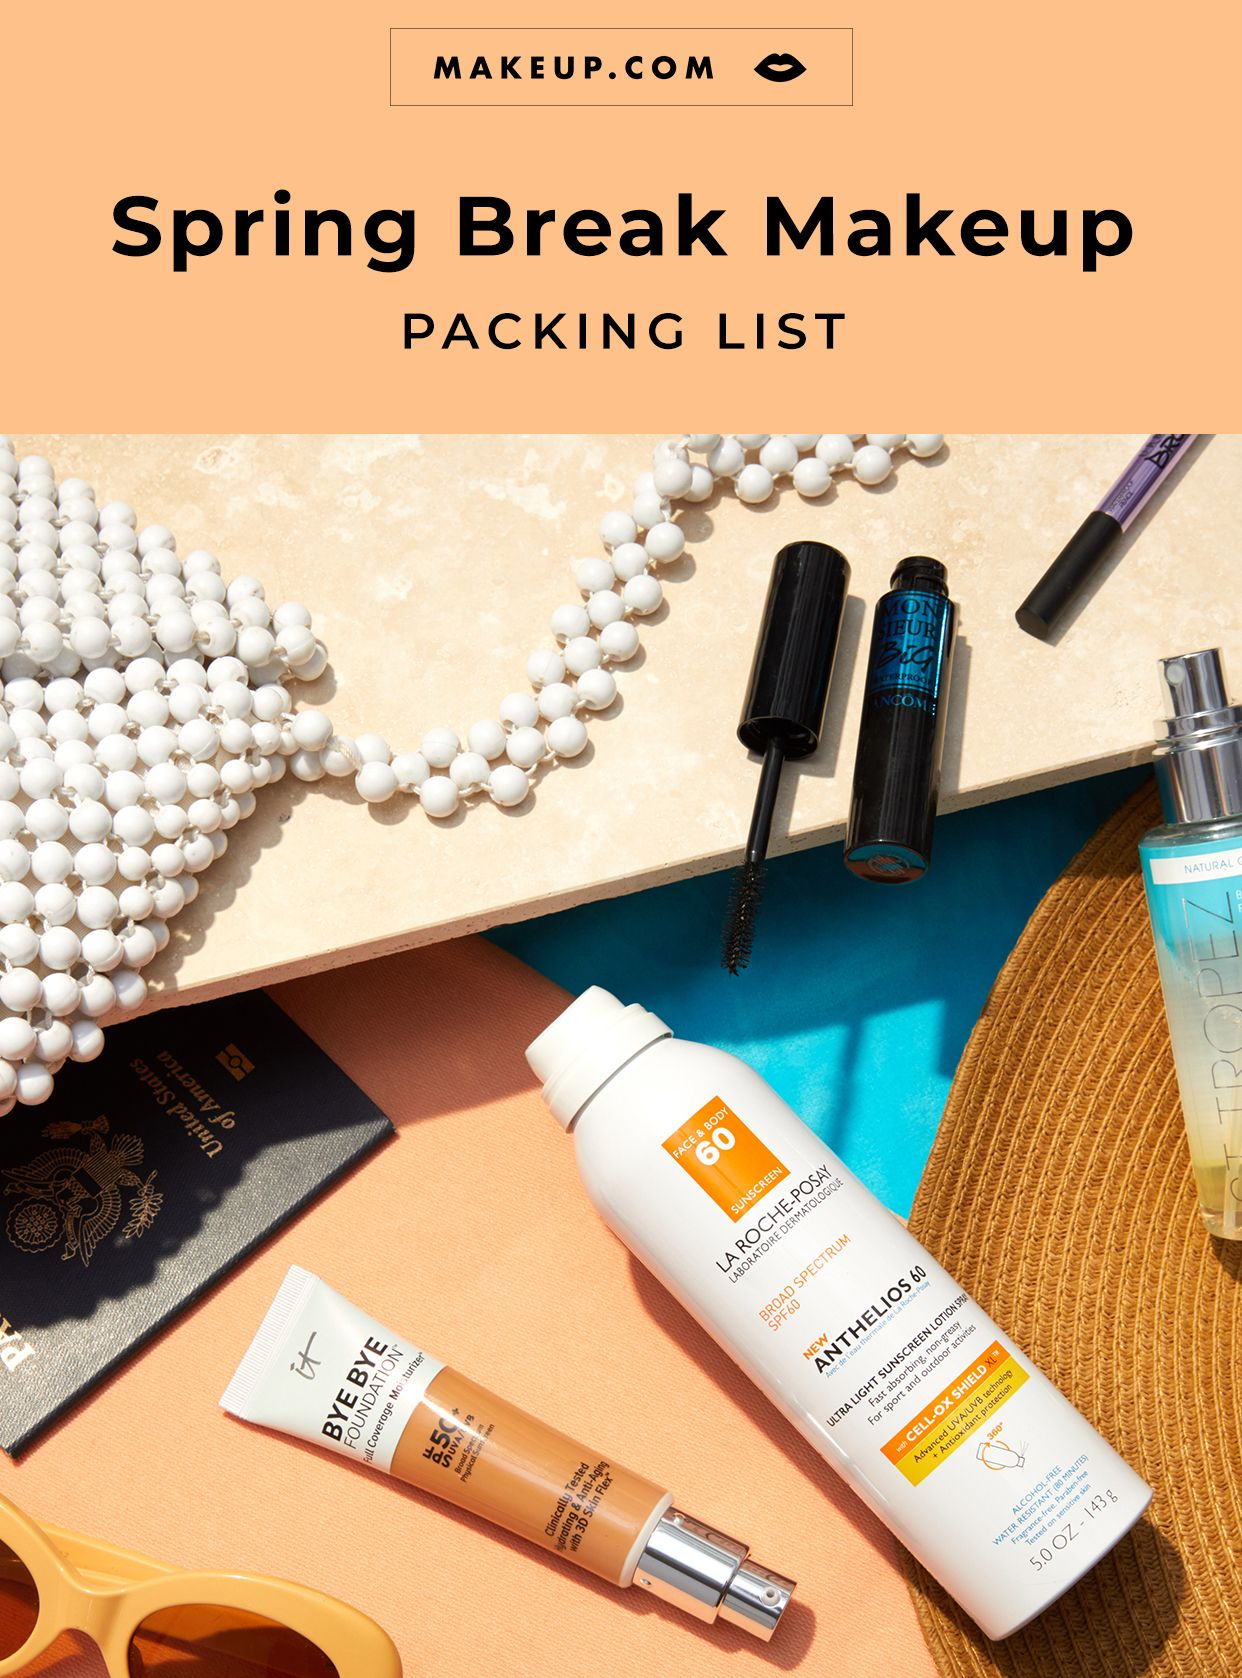 Spring Break Beauty and Makeup Packing List in 2020